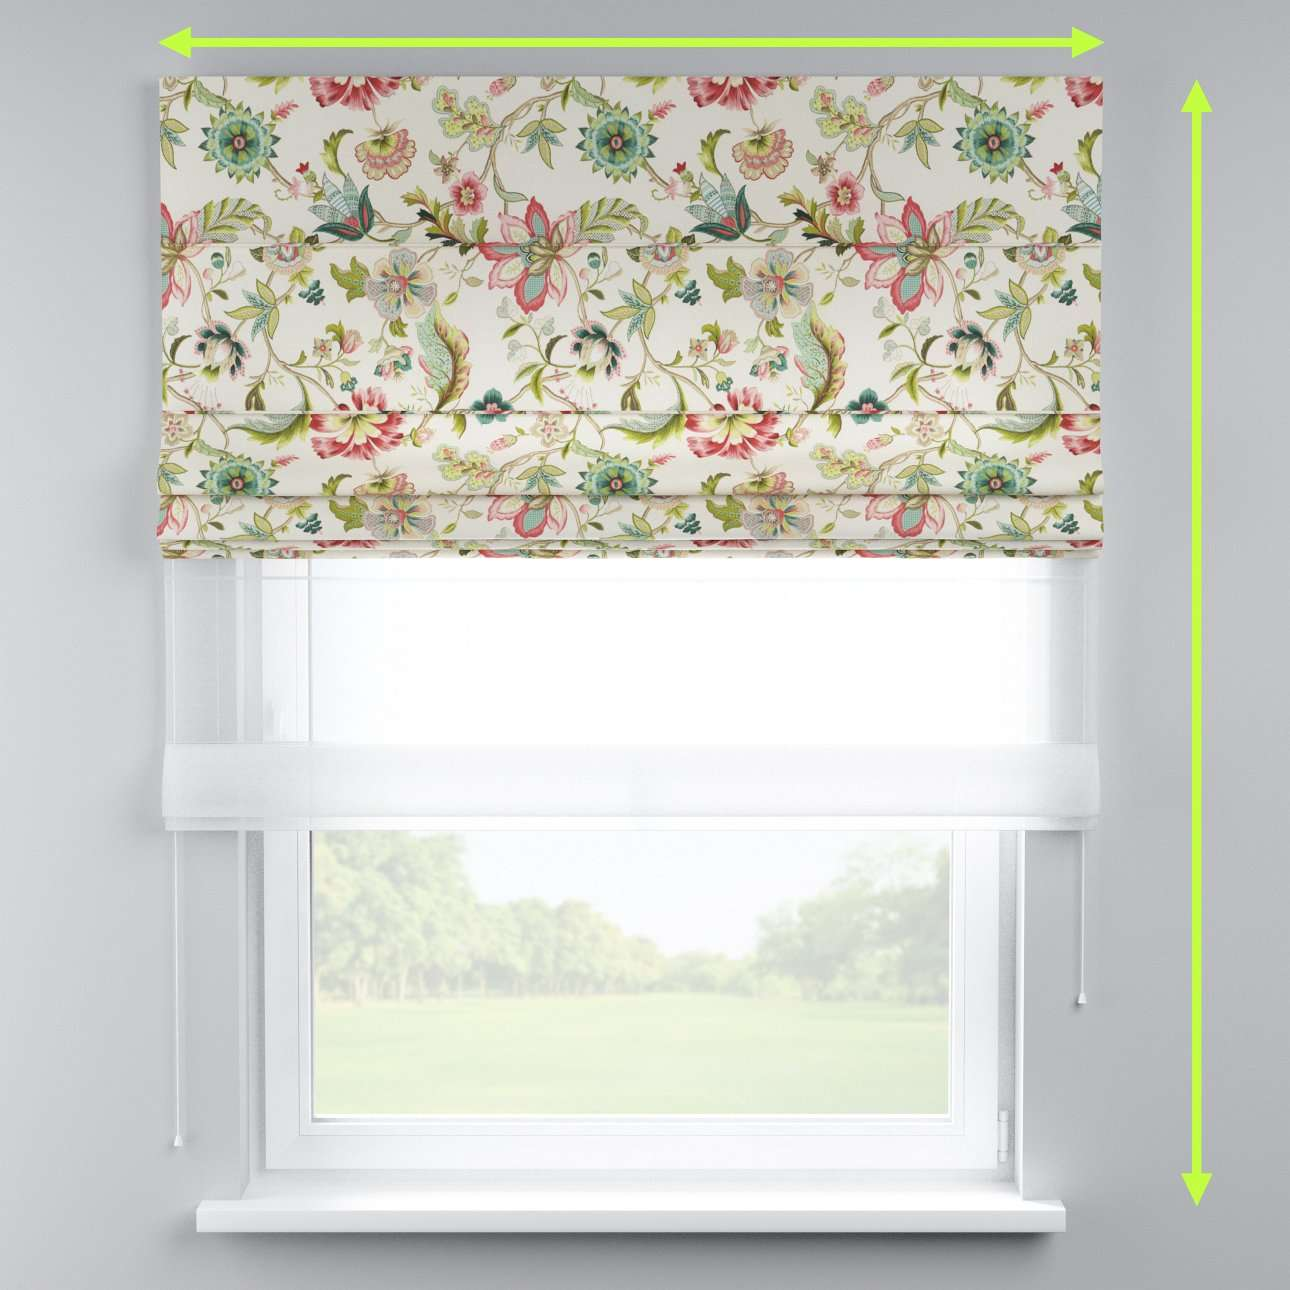 Voile and fabric roman blind (DUO II) in collection Londres, fabric: 122-00